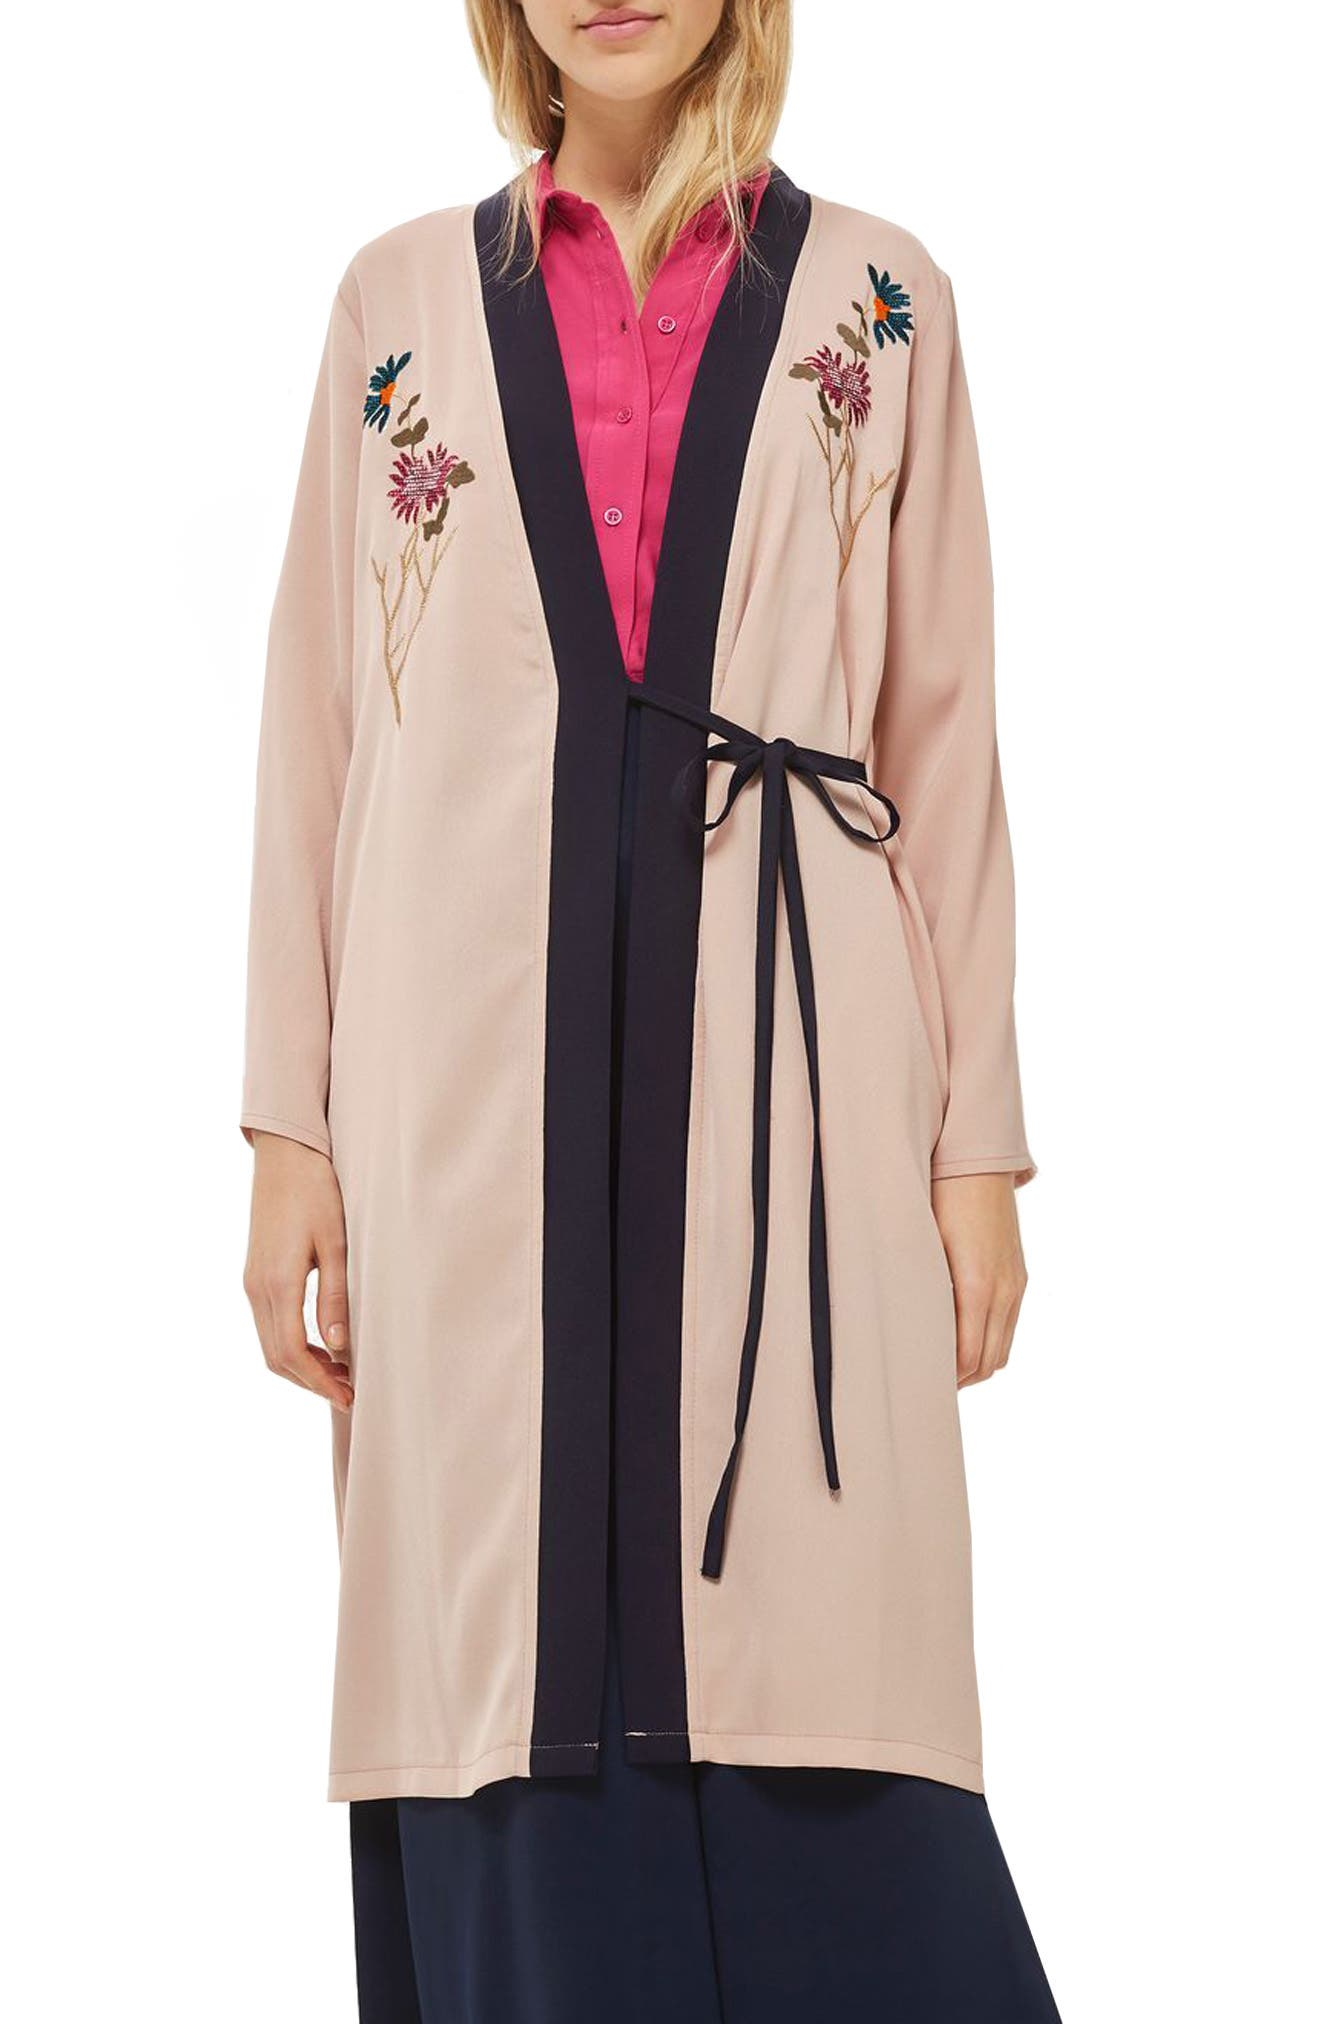 Tiger Embroidered Duster Coat,                         Main,                         color, Nude